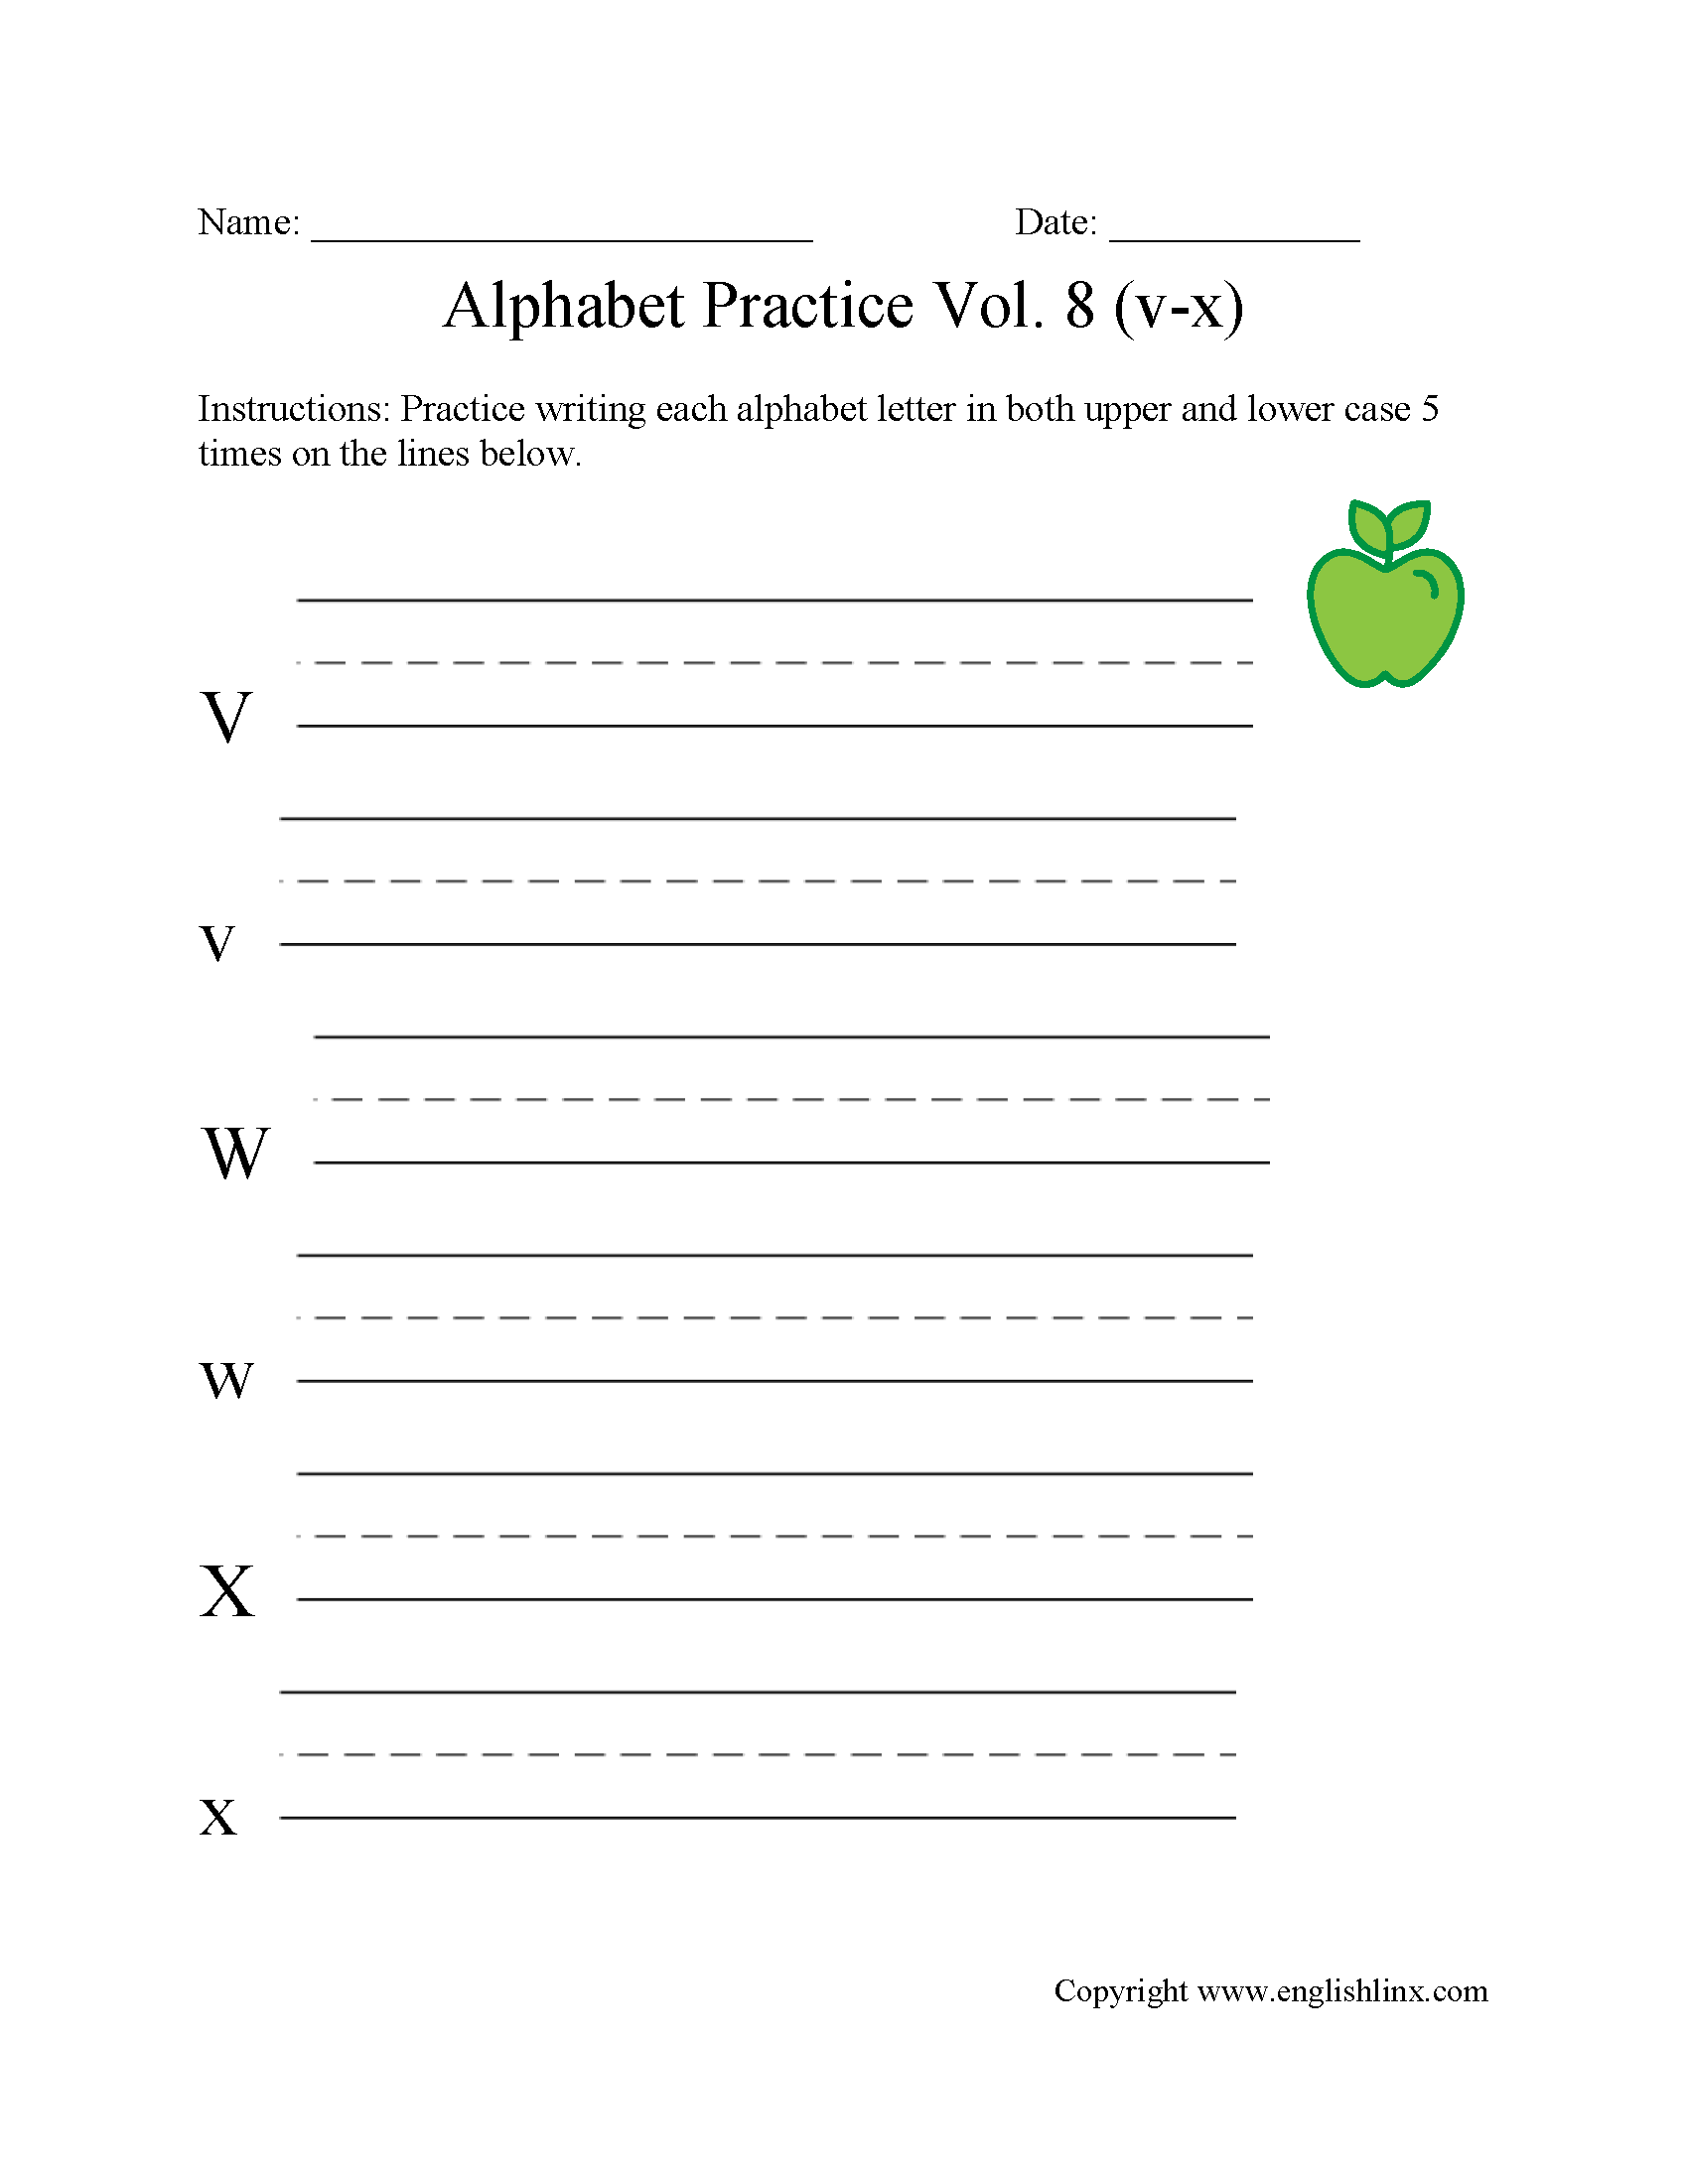 V to X Writing Alphabet Worksheet